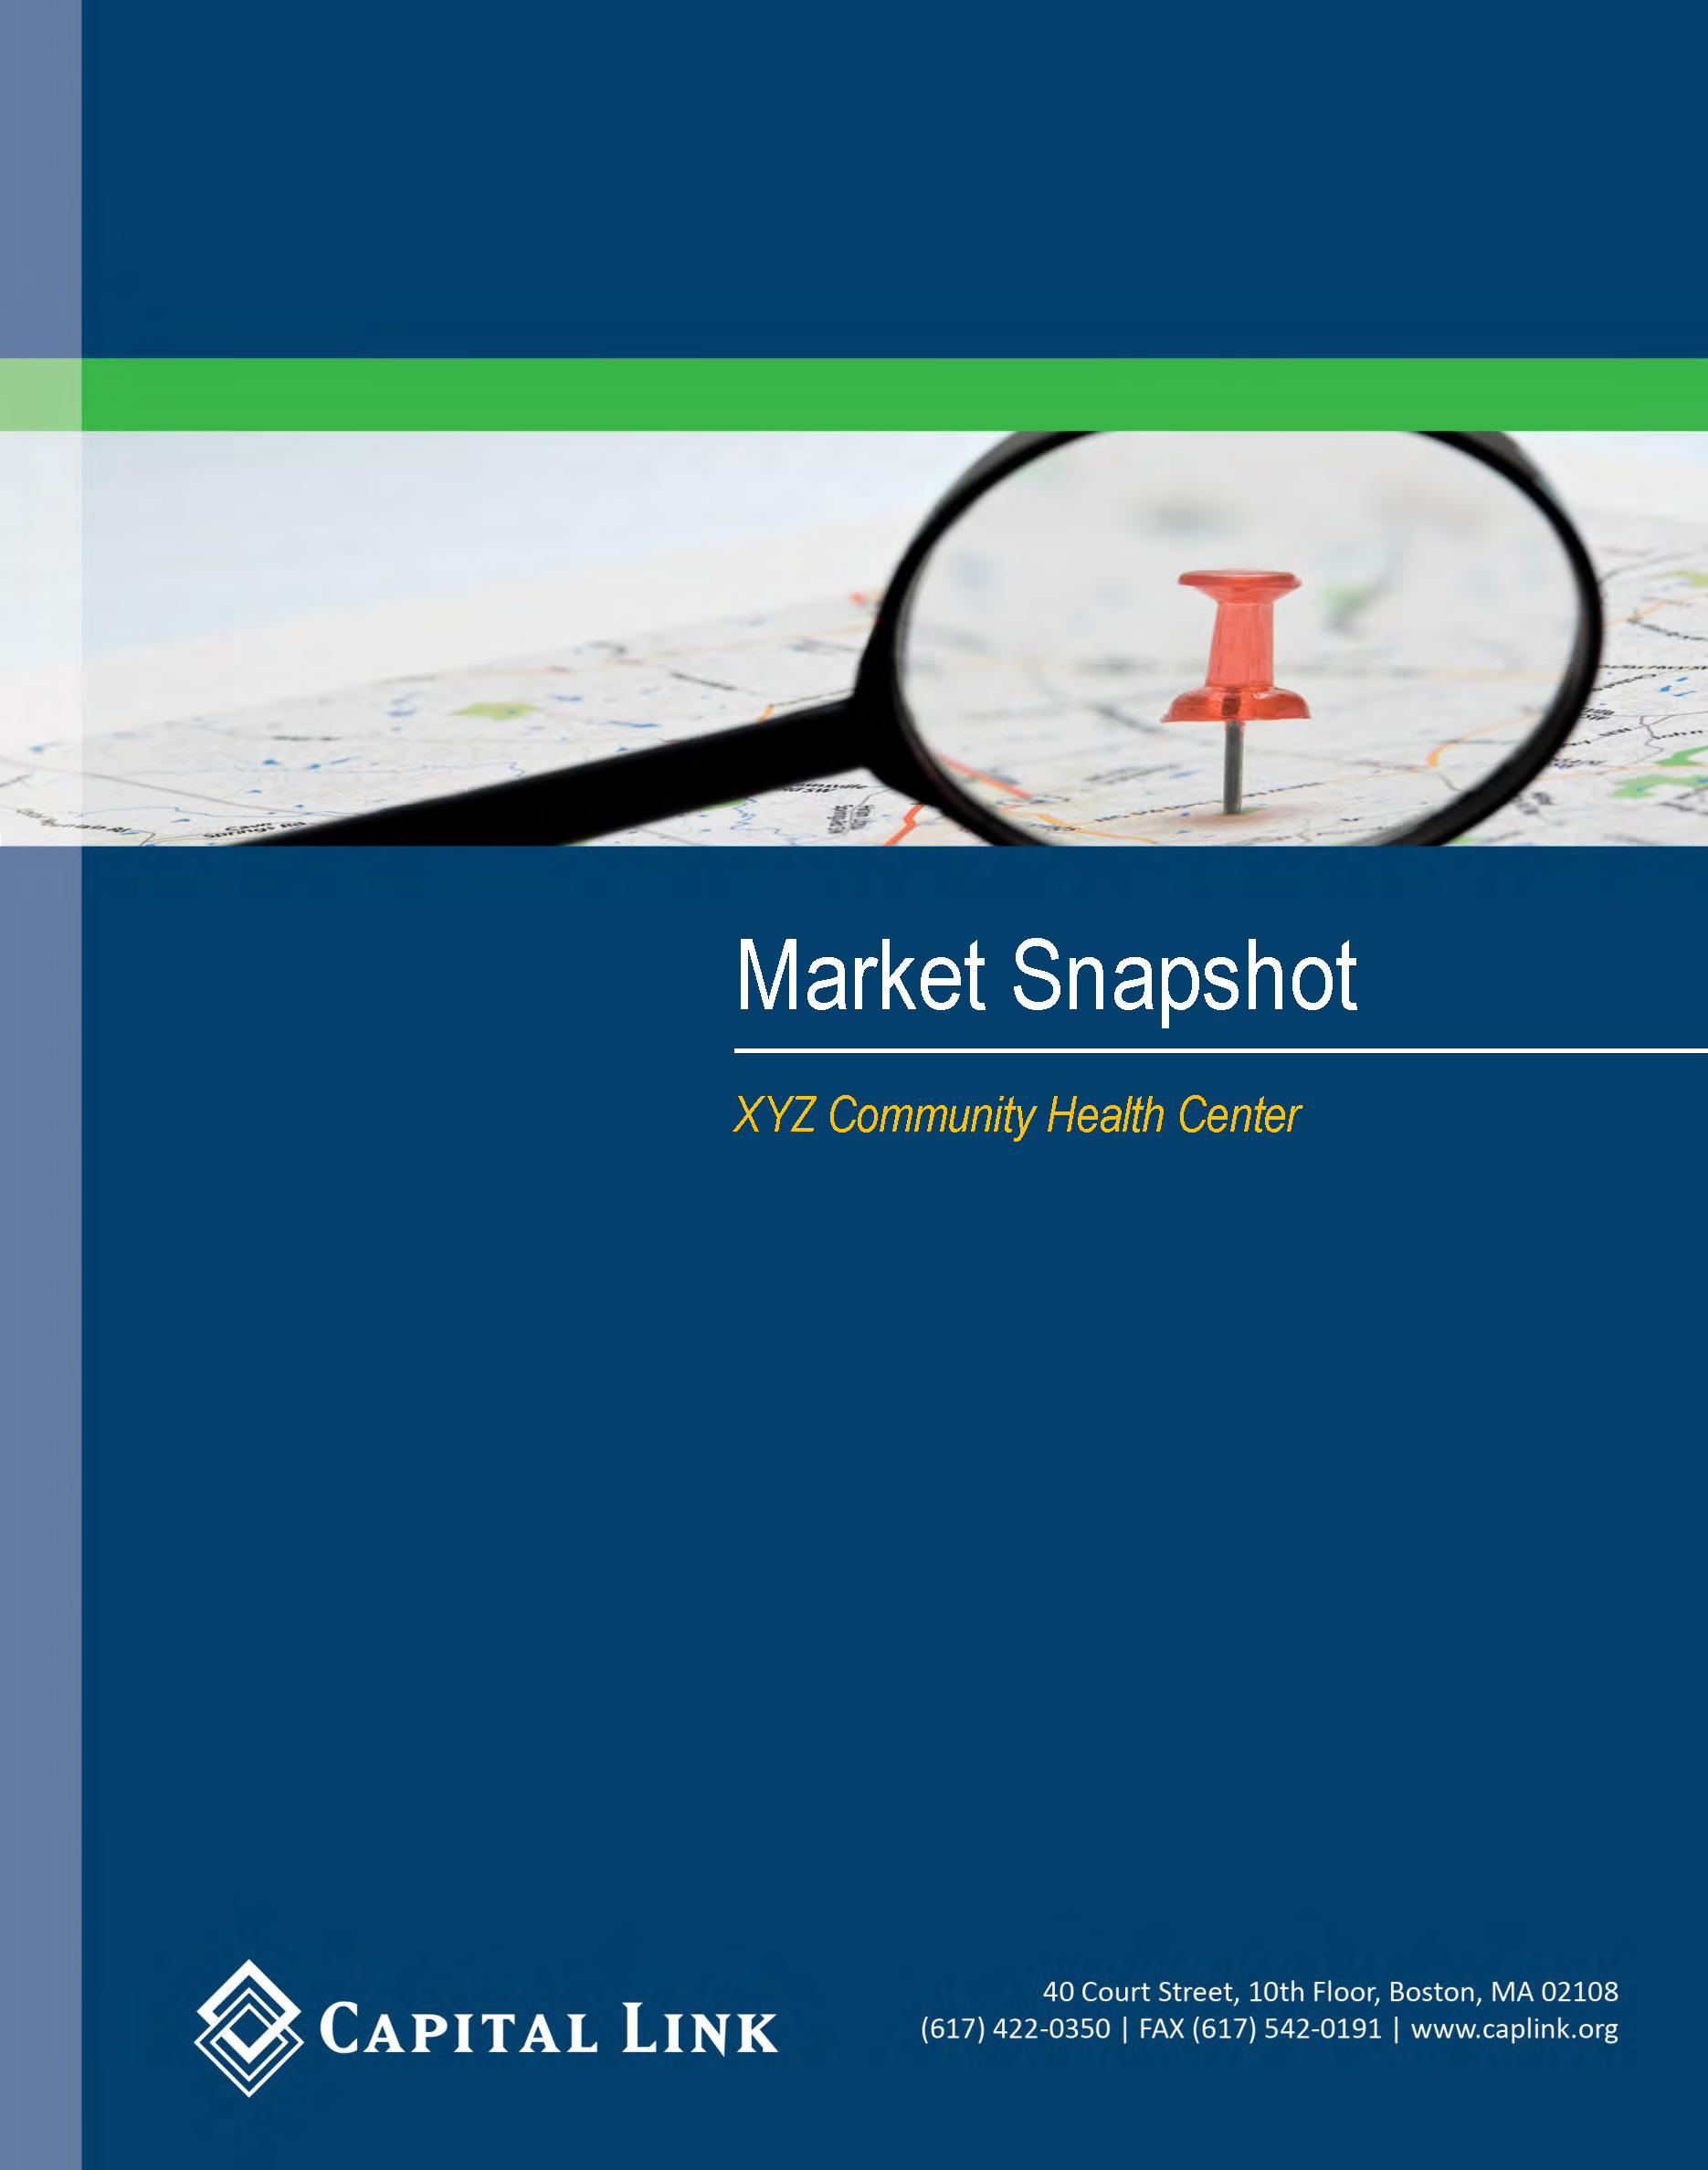 Market Snapshot Sample